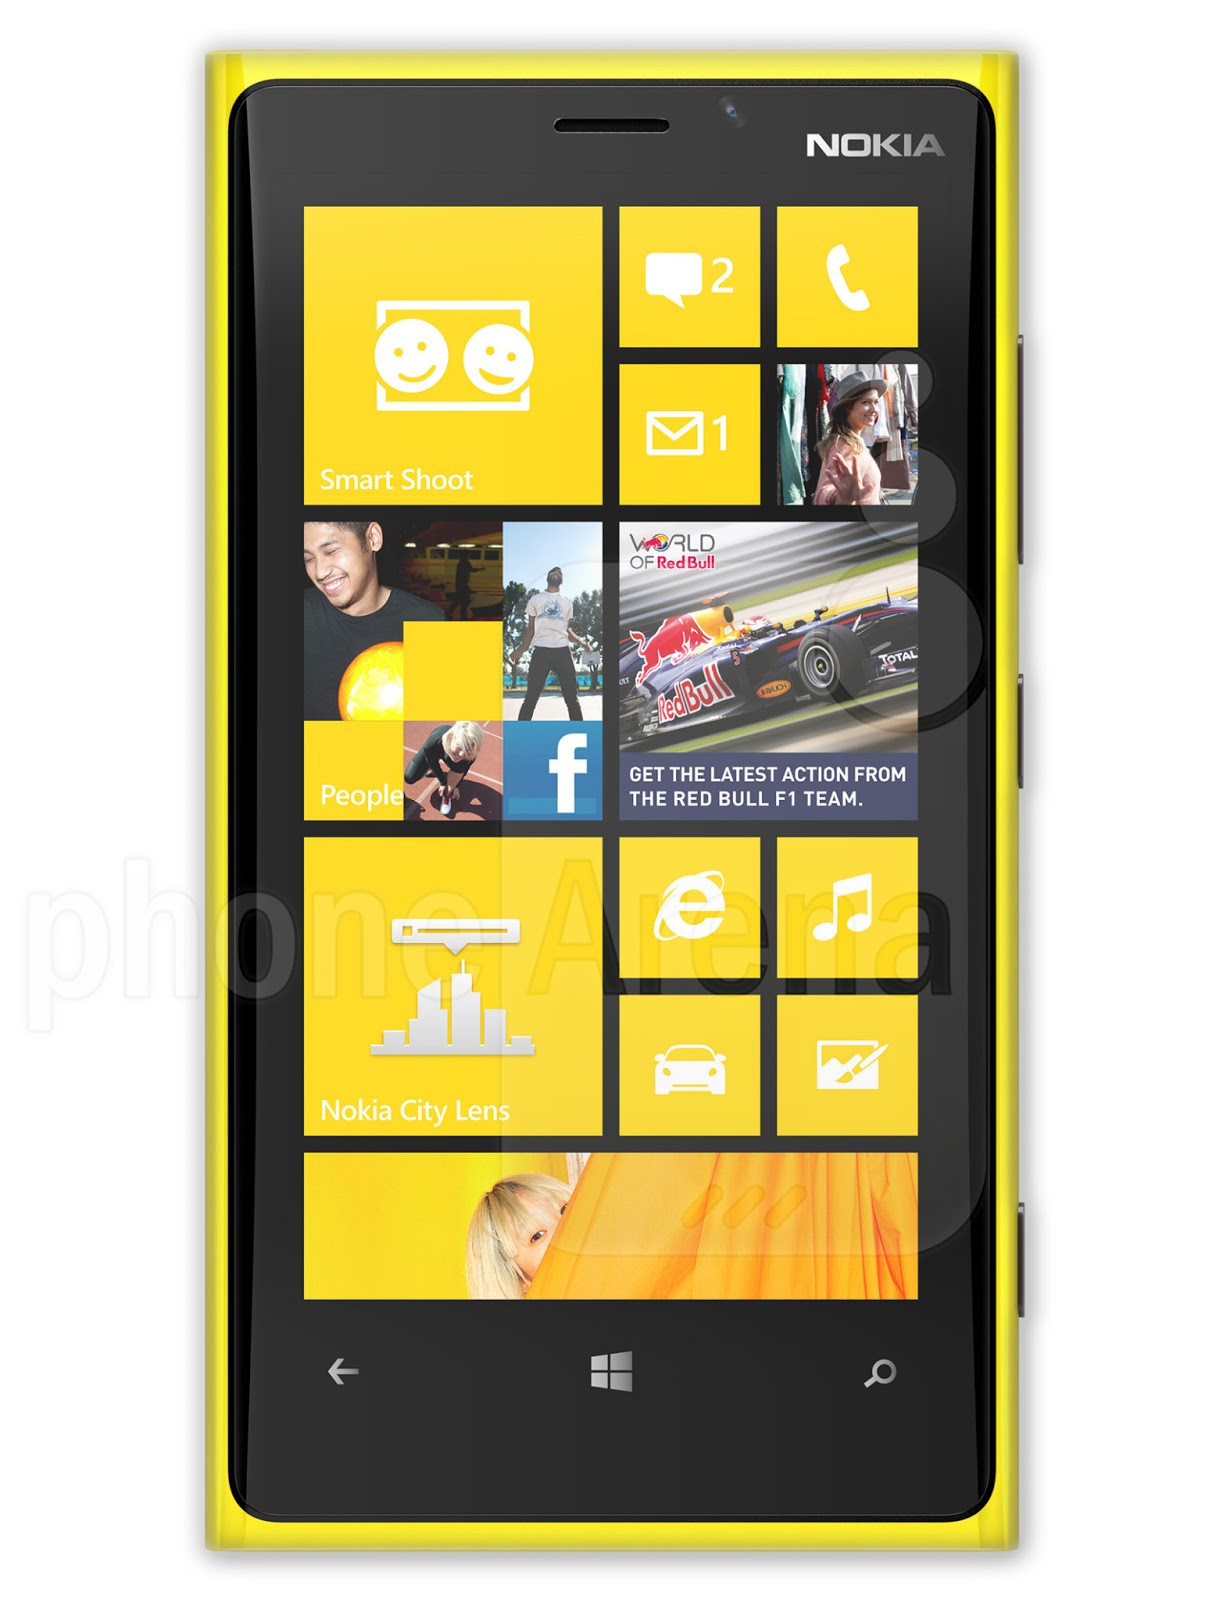 Nokia Lumia 920 (RM-820) Latest Flash Files Free Download.